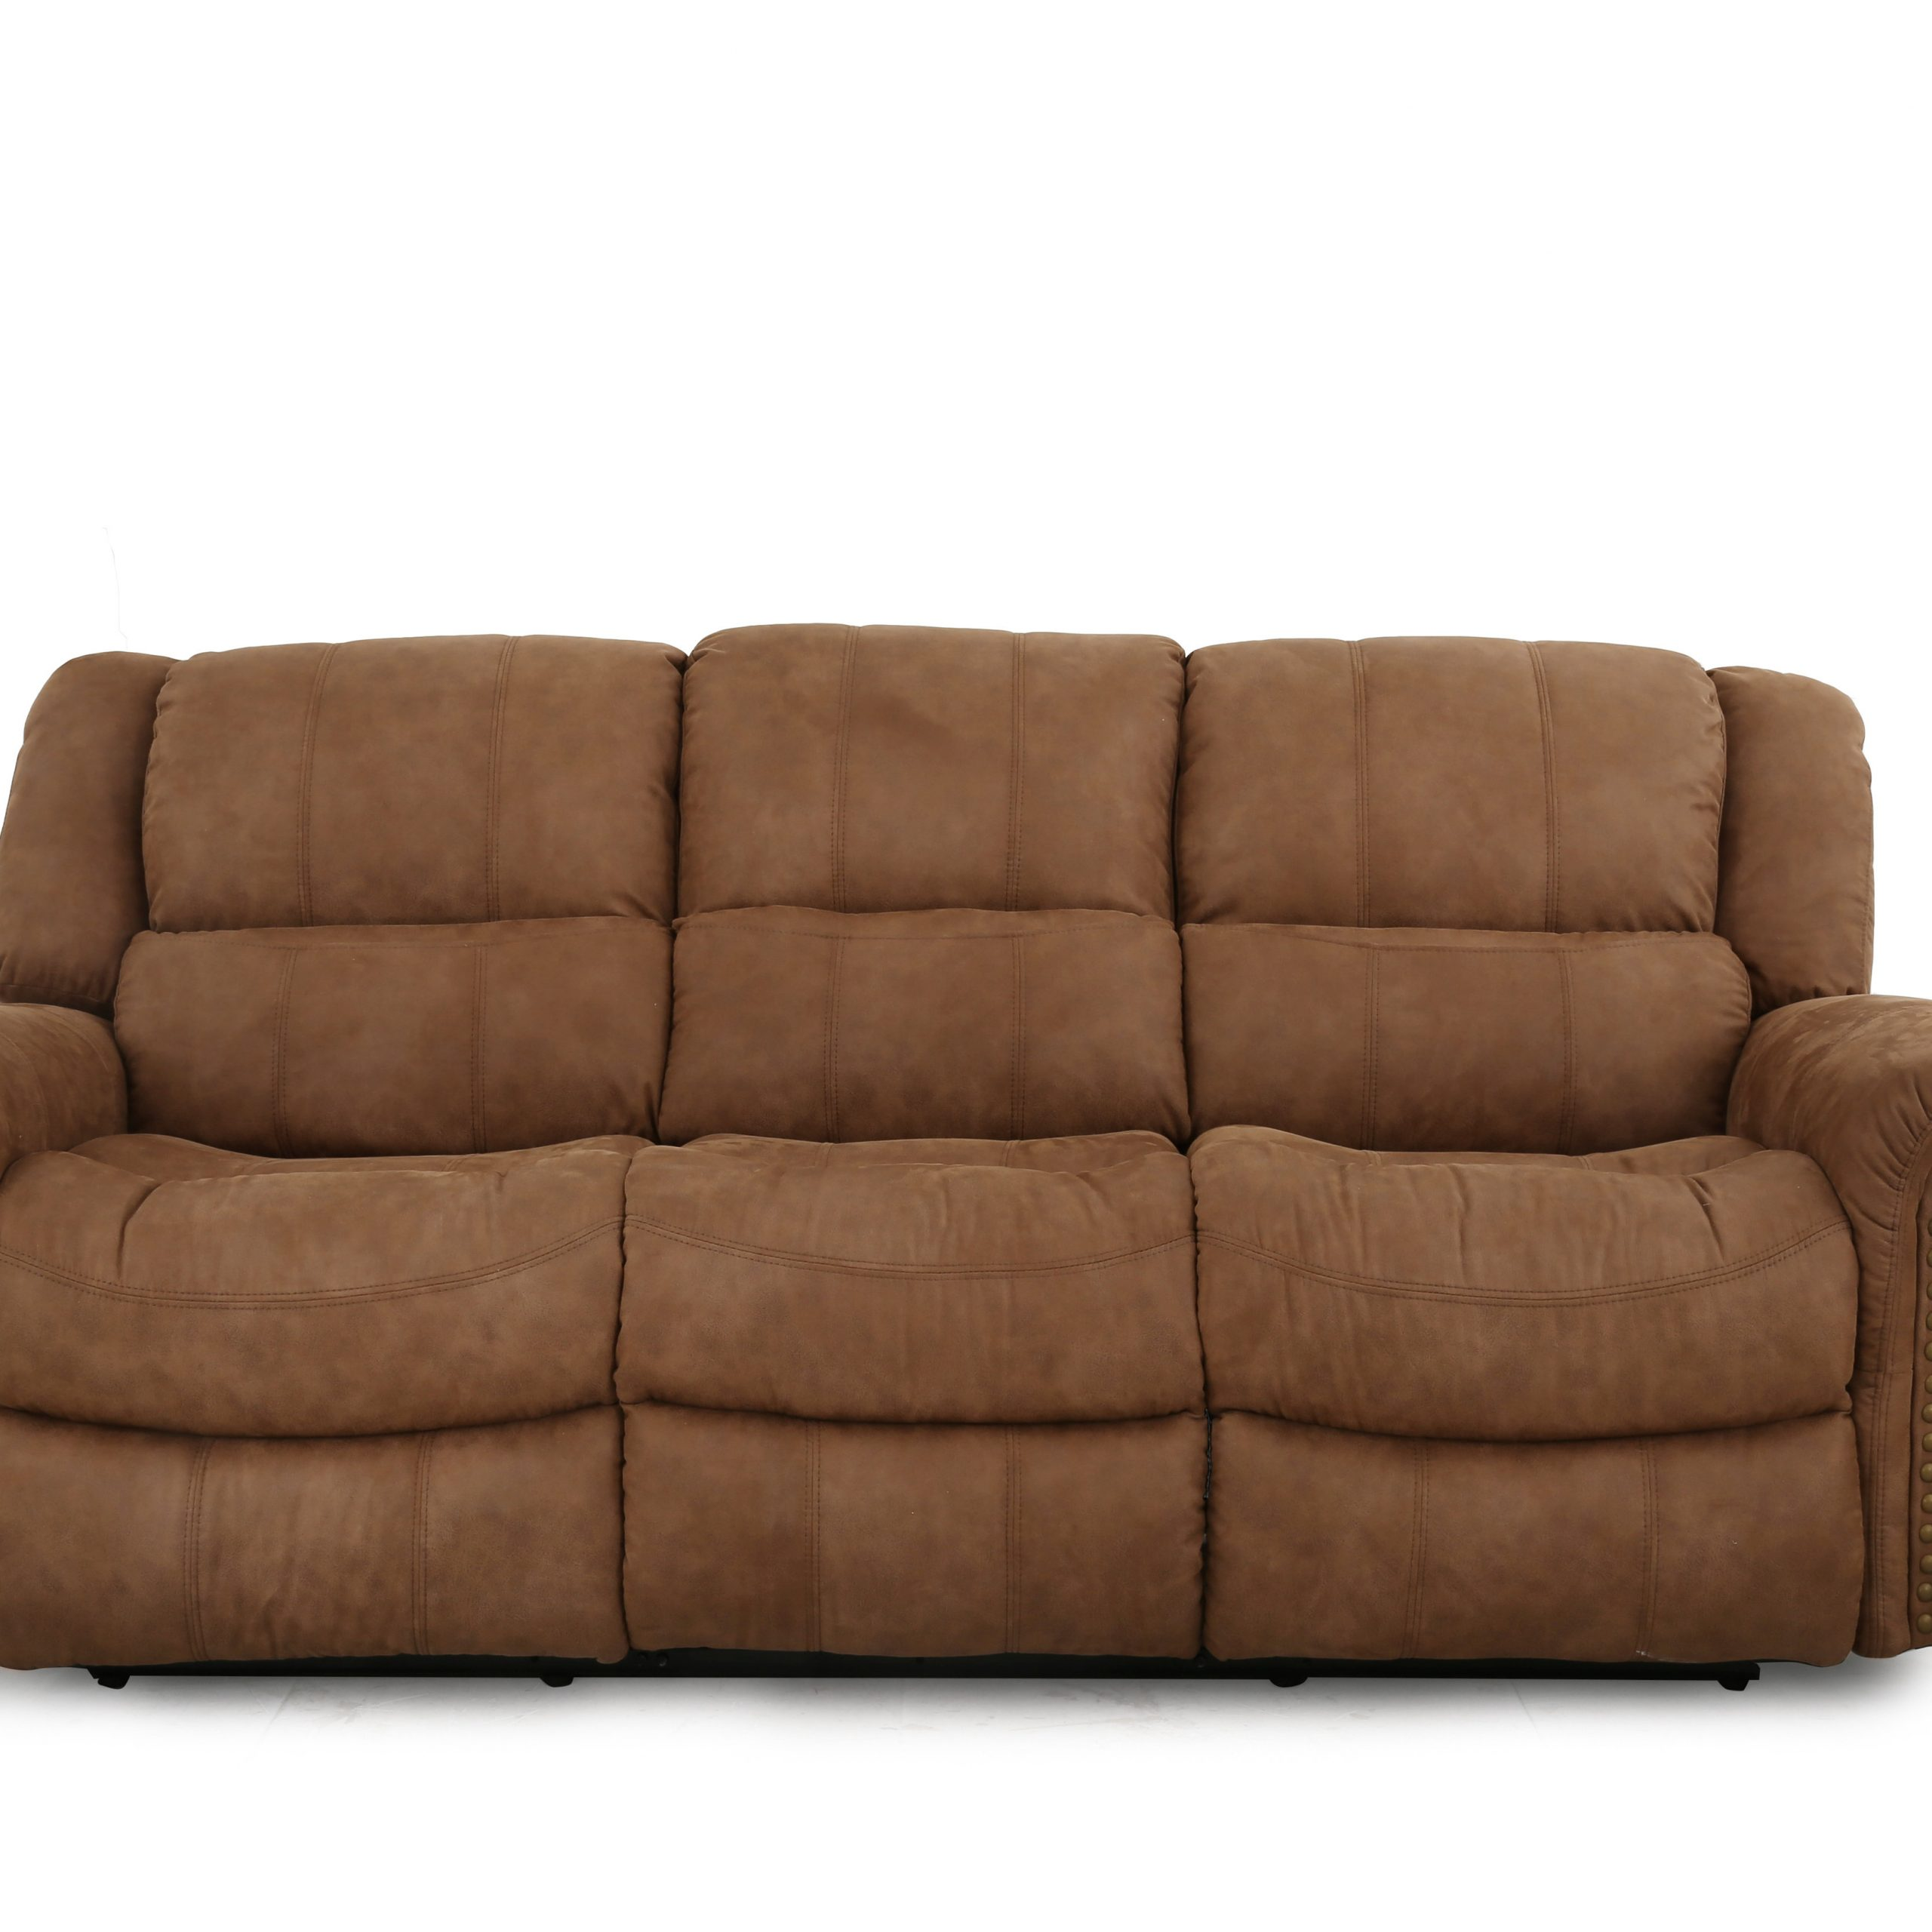 Rick Manual Reclining Sofa | Costplus For Manual Reclining Sofas (View 4 of 11)